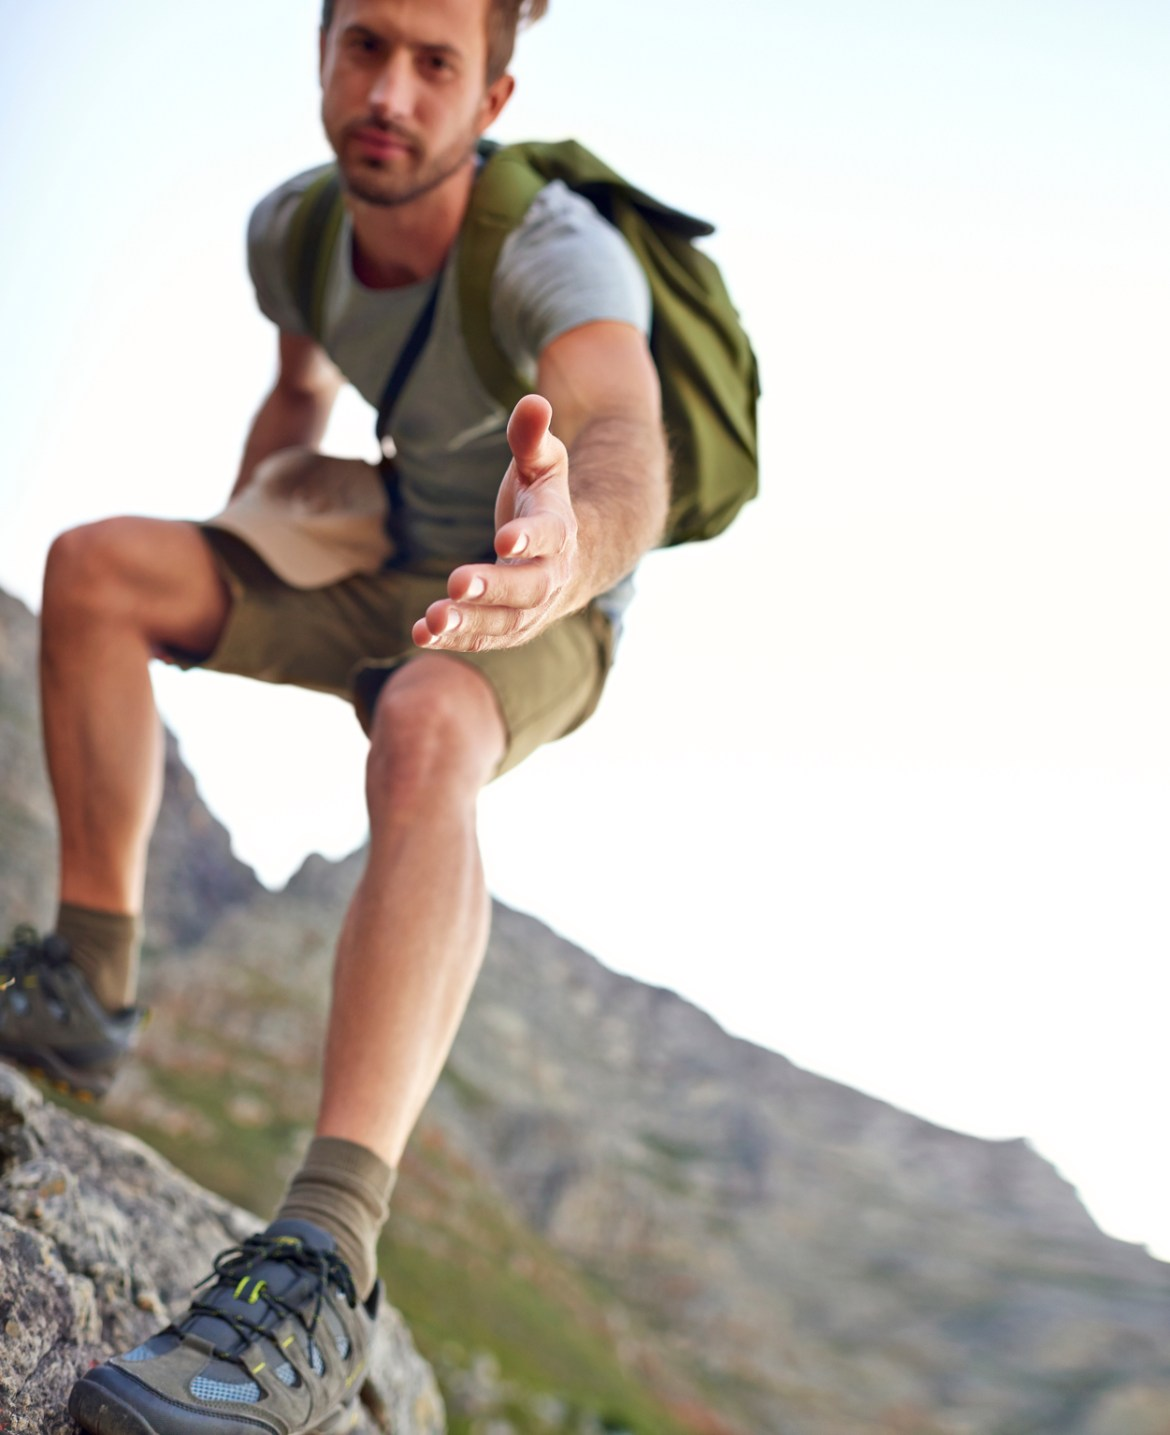 Man hiking on hill, reaching out to help someone up